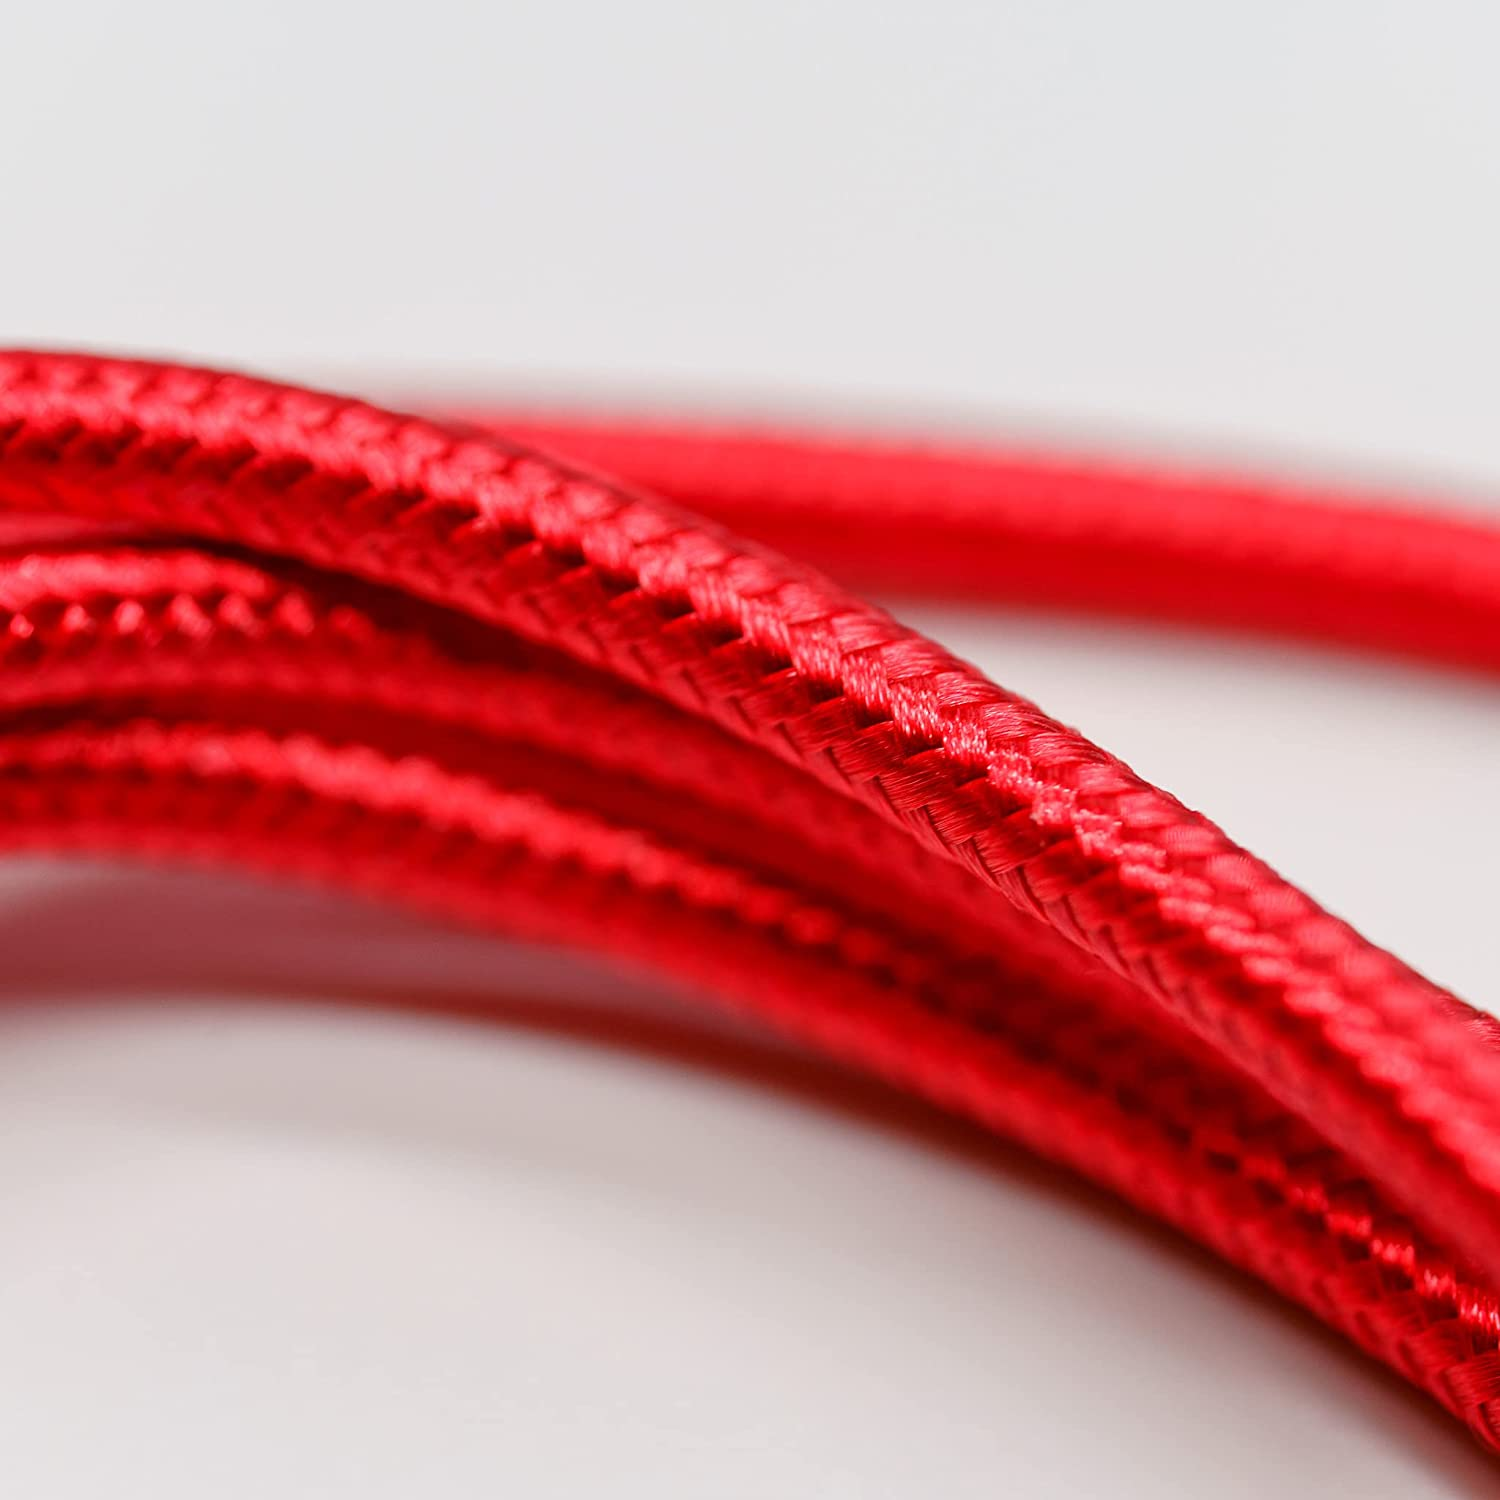 TechTock 540 Degree Rotating Cable with 3 Magnetic Tips, The Last Cable, Compatible with Type-C, Lightning, Micro-USB, Updated 2021 (Red, 1M)